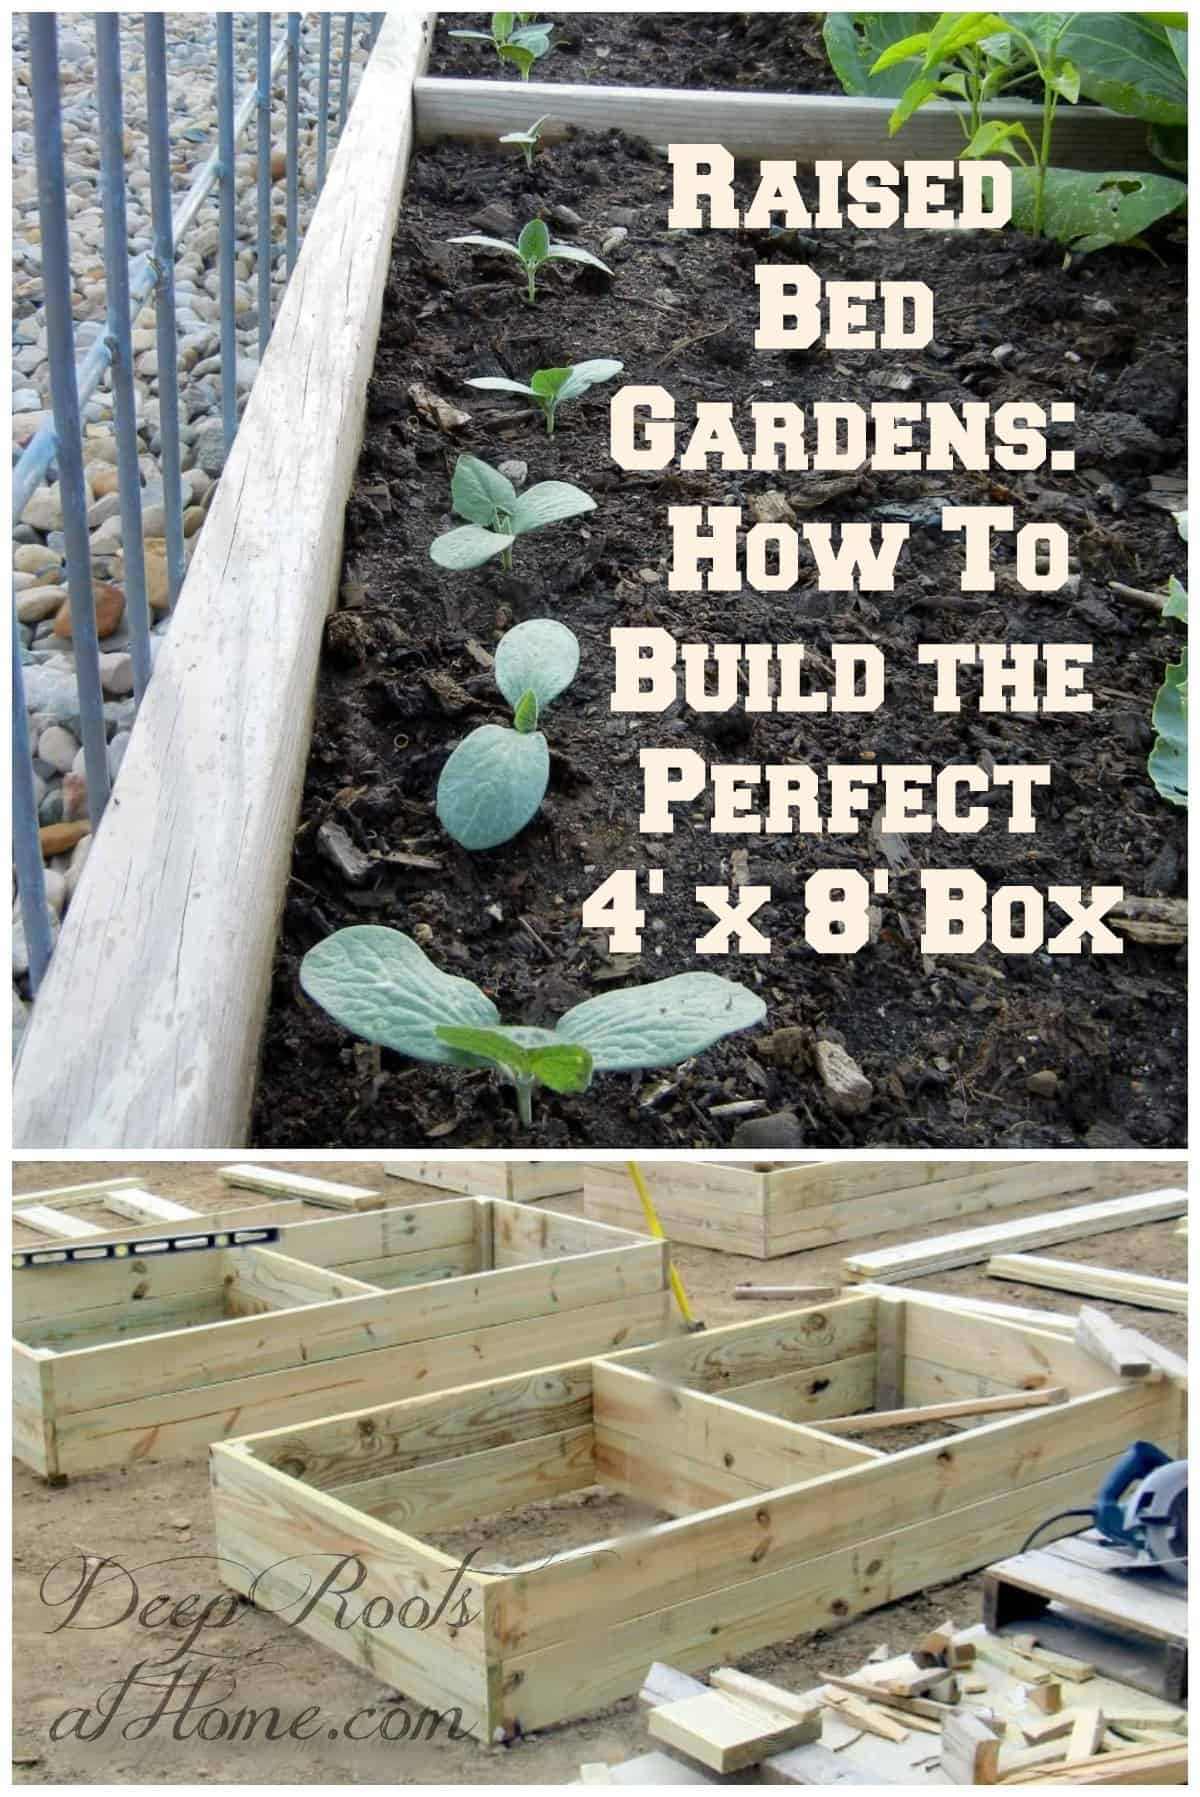 Raised Bed Gardens: How To Build the Perfect 4' x 8' Box, 4' x8's. raised bed garden